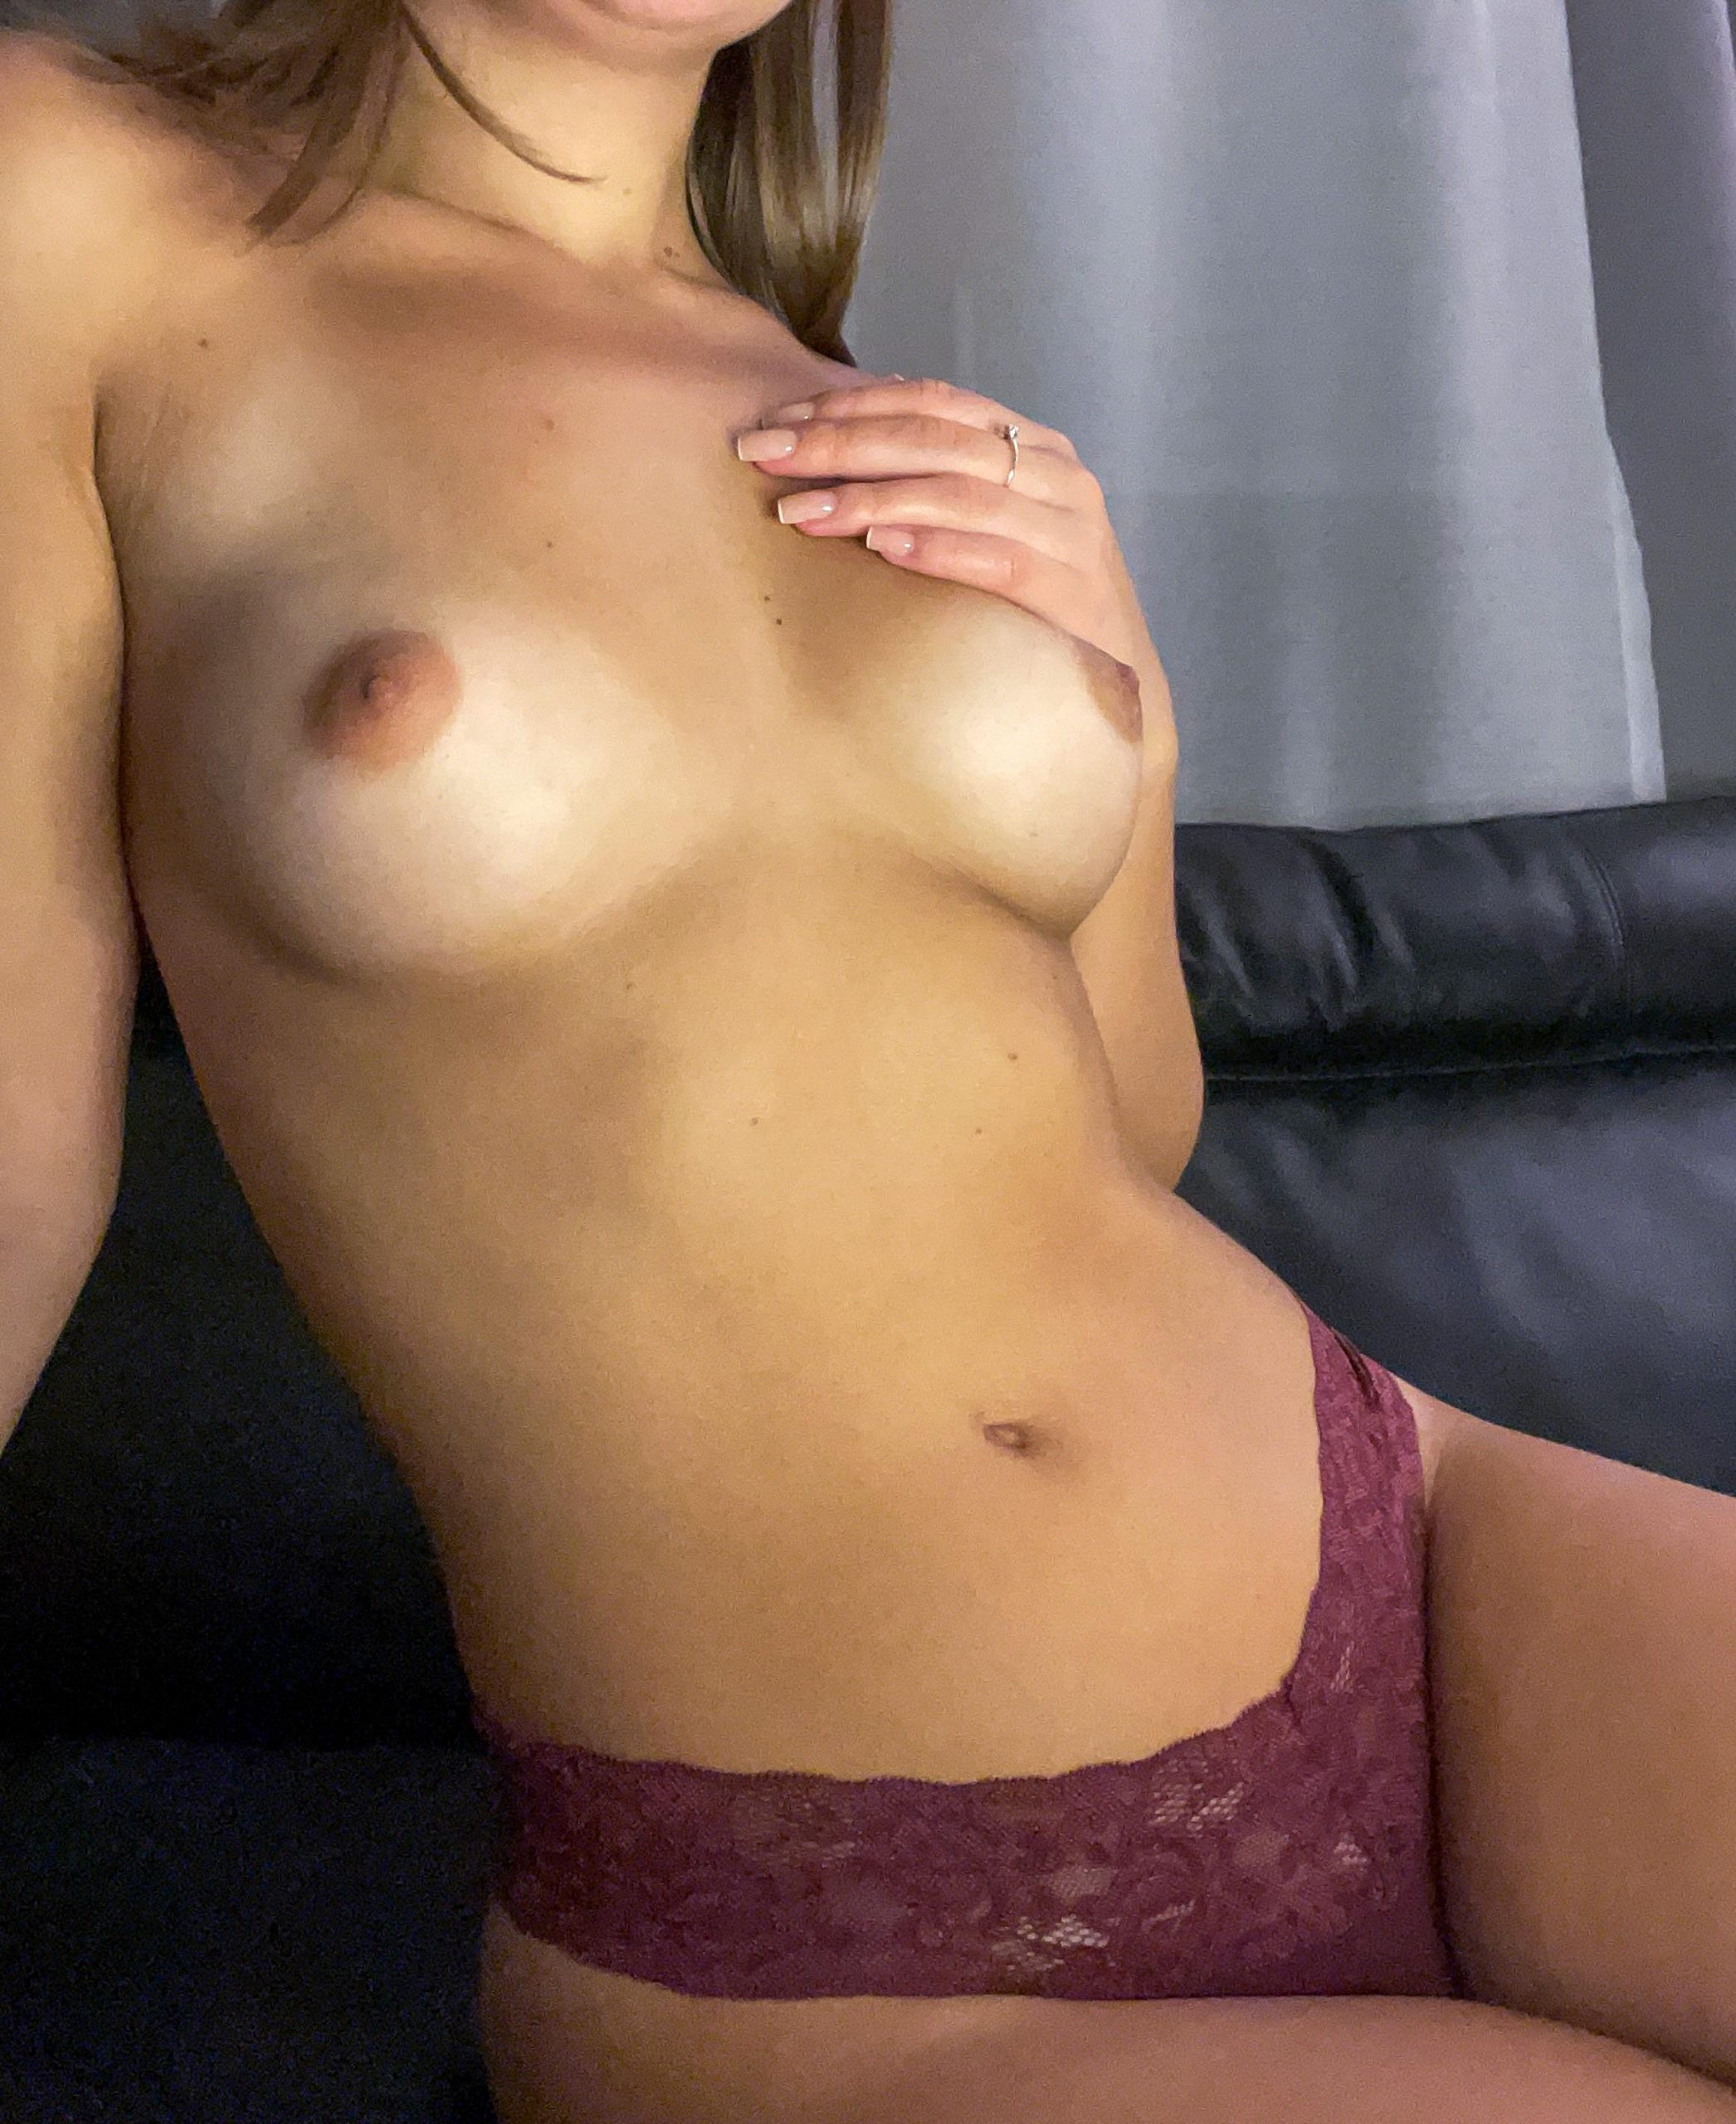 Some Cute Tits To Brighten Up Your Day😇